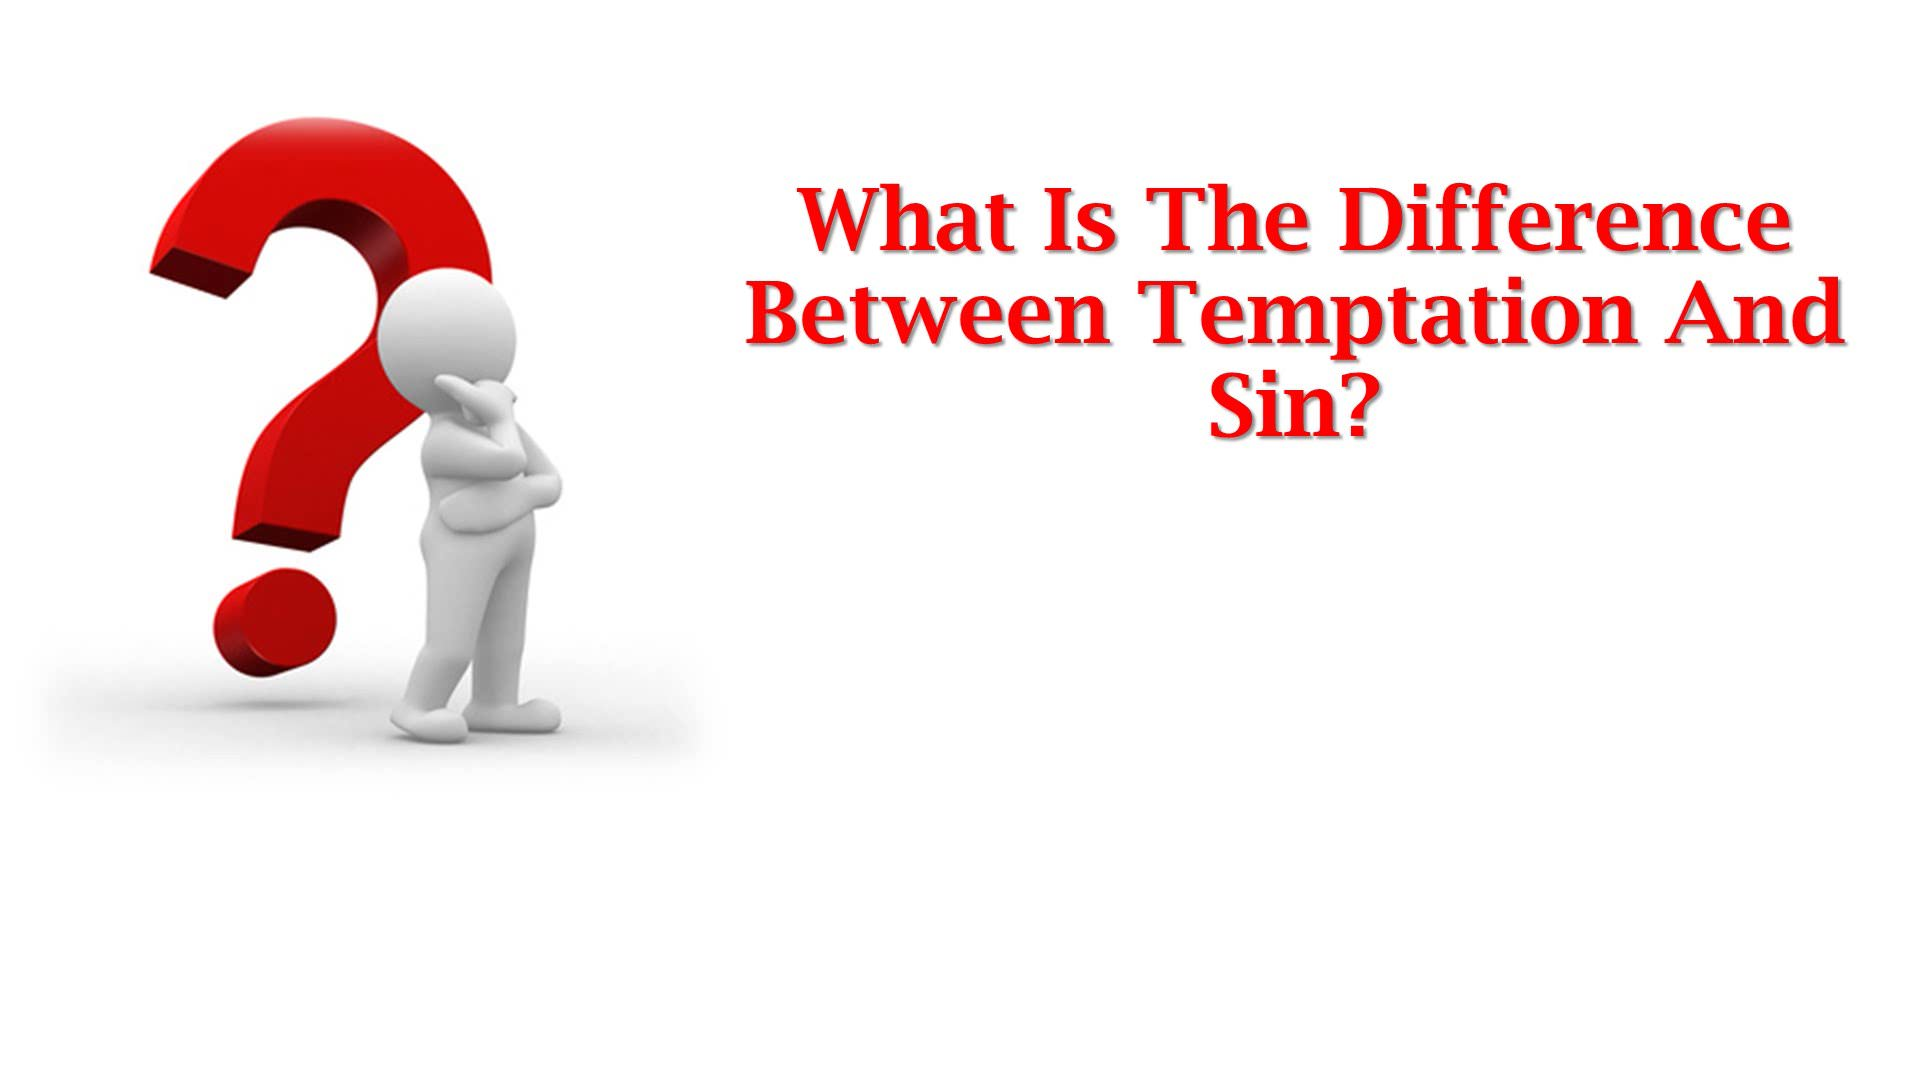 What Is The Difference Between Temptation And Sin?